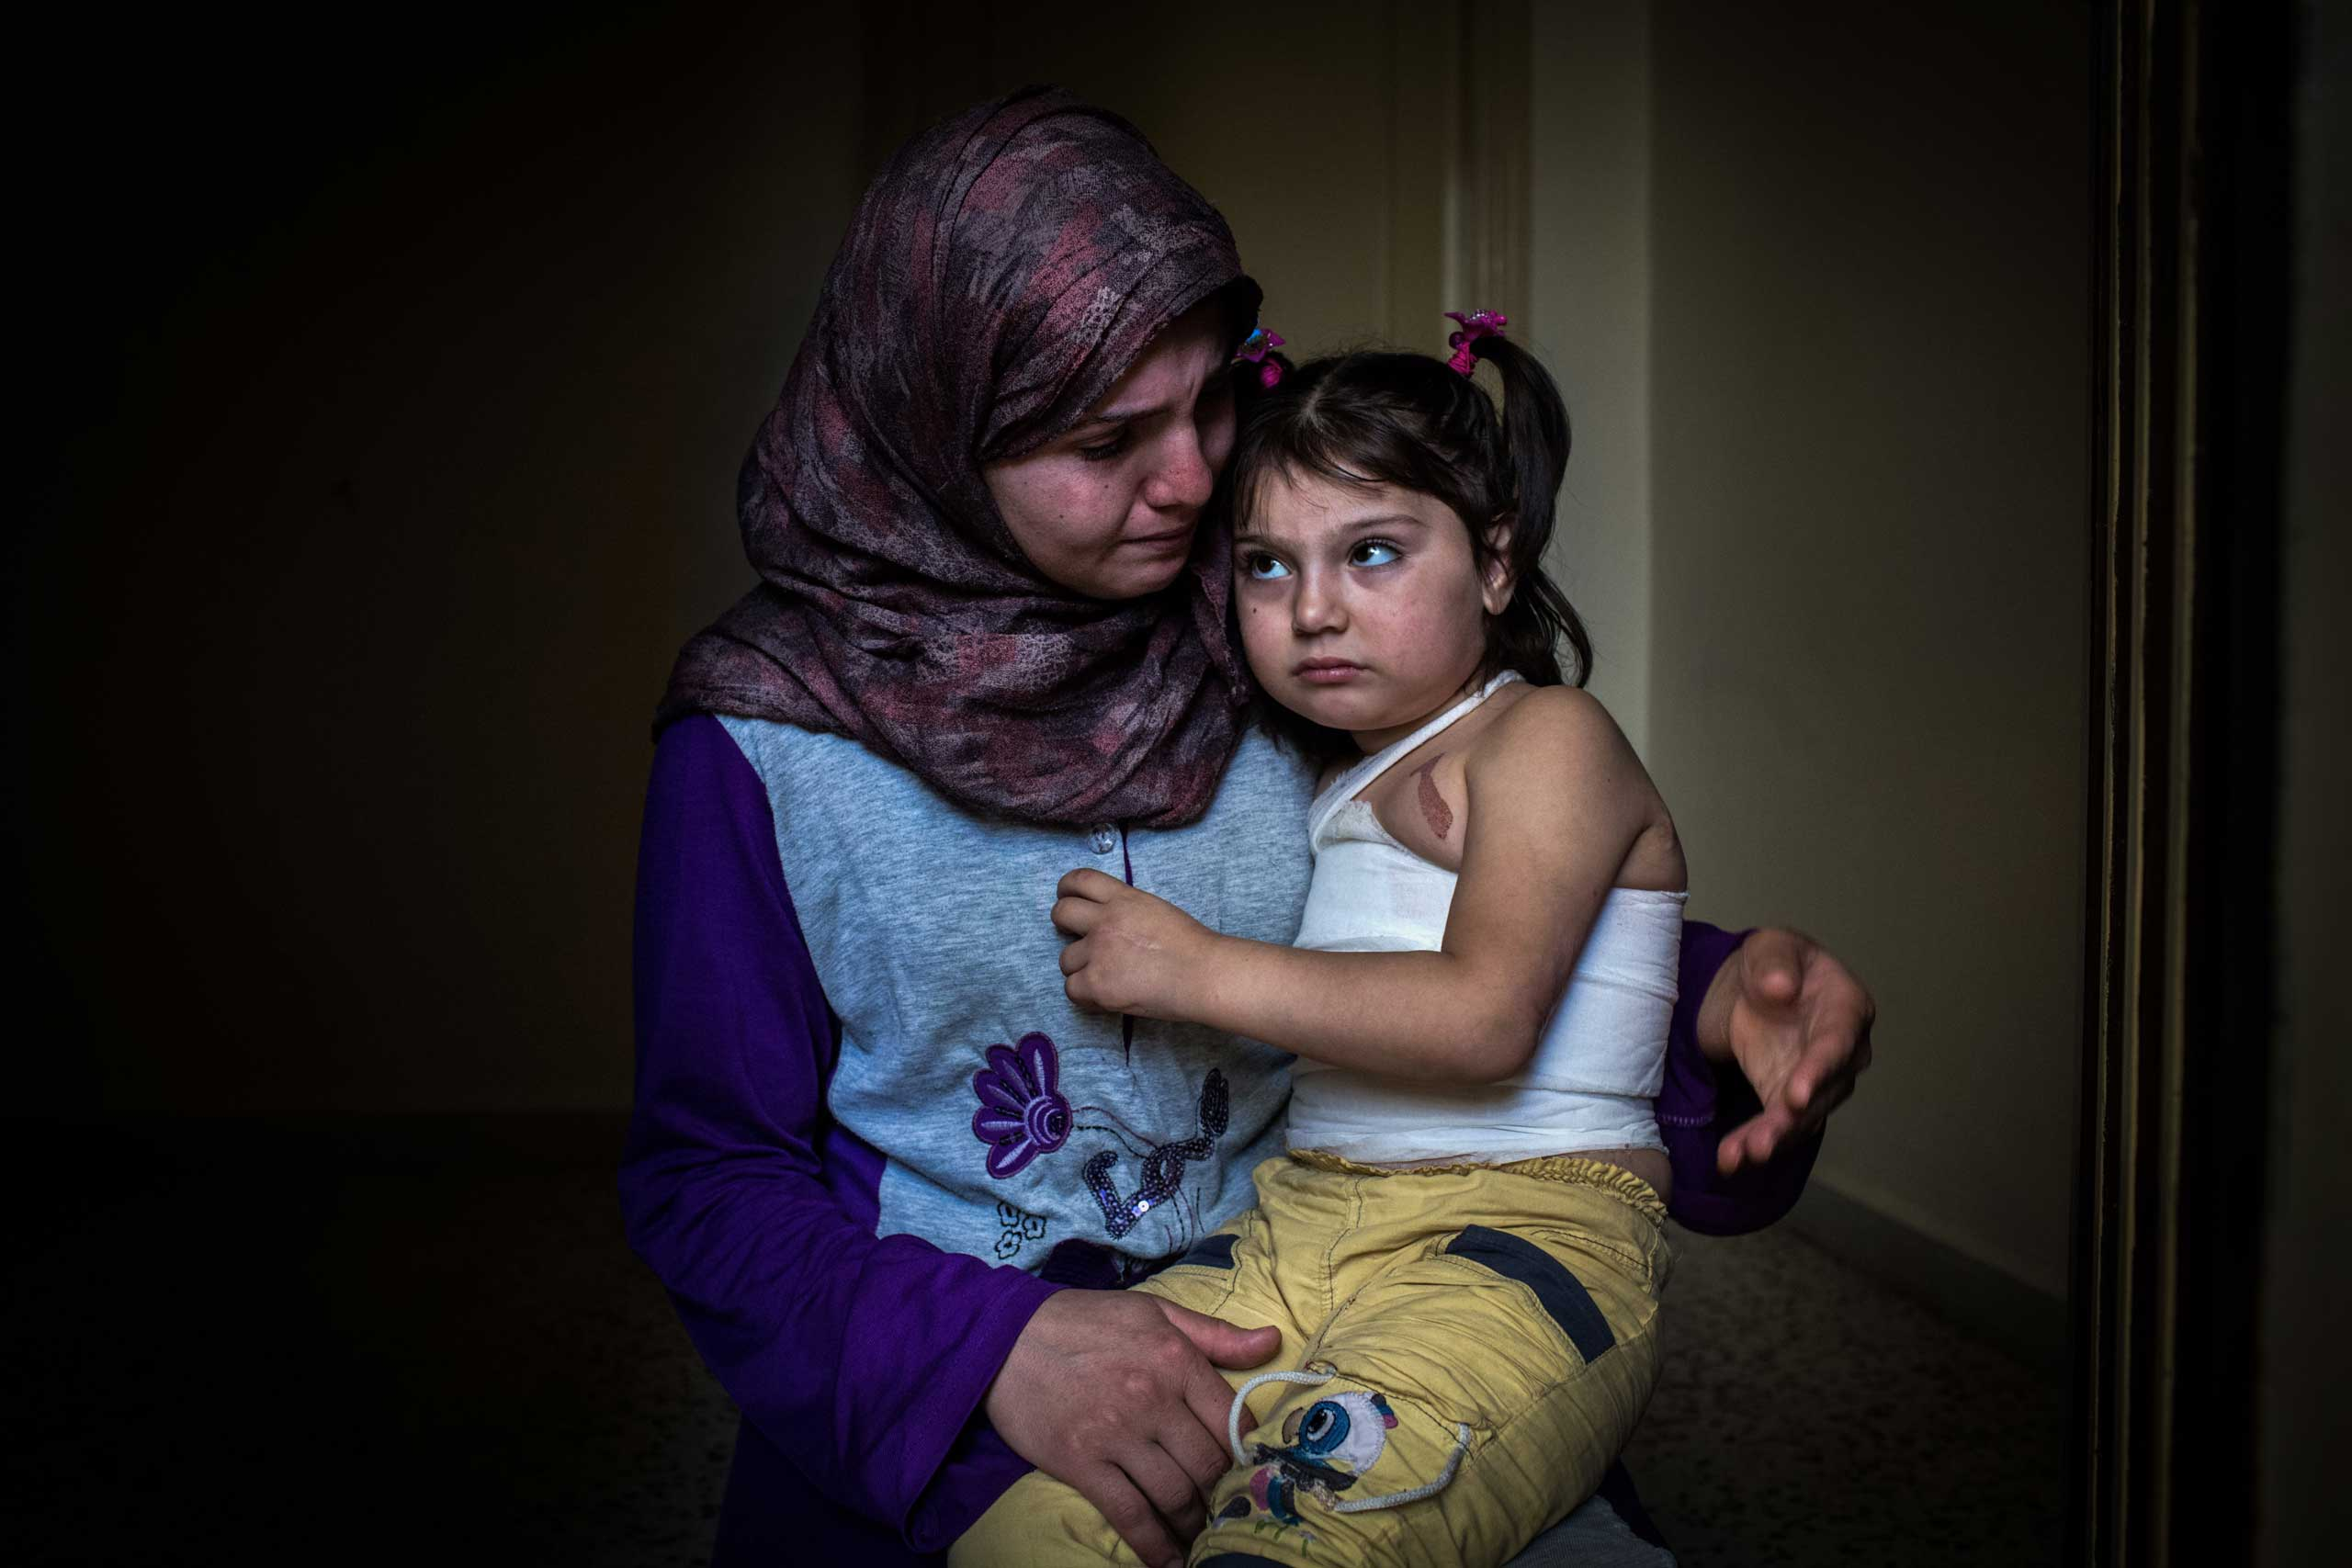 Yemen, 5, and her mother at home in northern Lebanon, on June 27, 2014. The girl was scalded by boiling water as bombs fell close to her home in November. Her mother carried her to Lebanon days later and said she'll need plastic surgery.